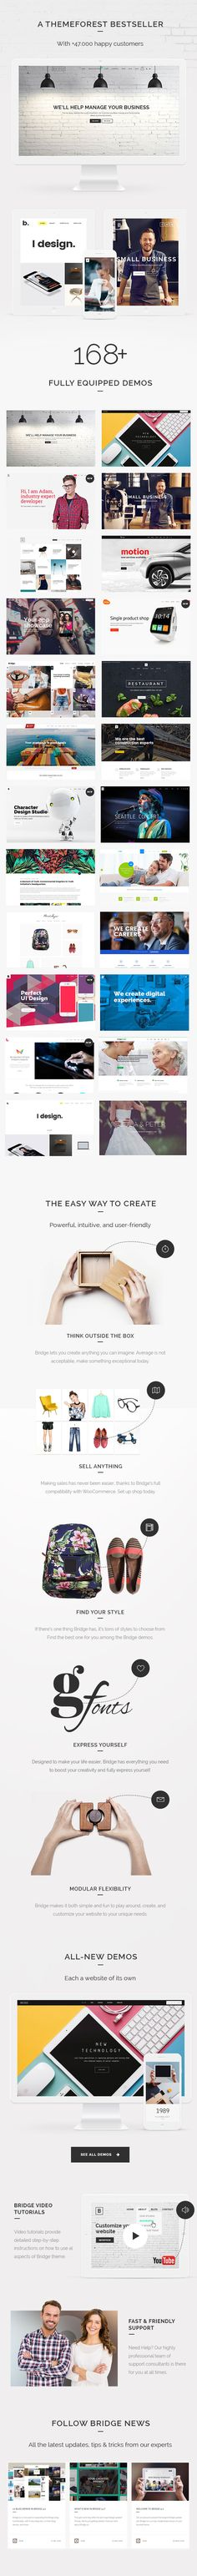 #What Our Customers are Saying     Main Features  BRIDGE is a retina multi-purpose WordPress theme built on the very powerful and flexible framework by QODE. You can easily import a... Download here:https://themeforest.net/item/bridge-creative-multipurpose-wordpress-theme/7315054?ref=classicdesignp